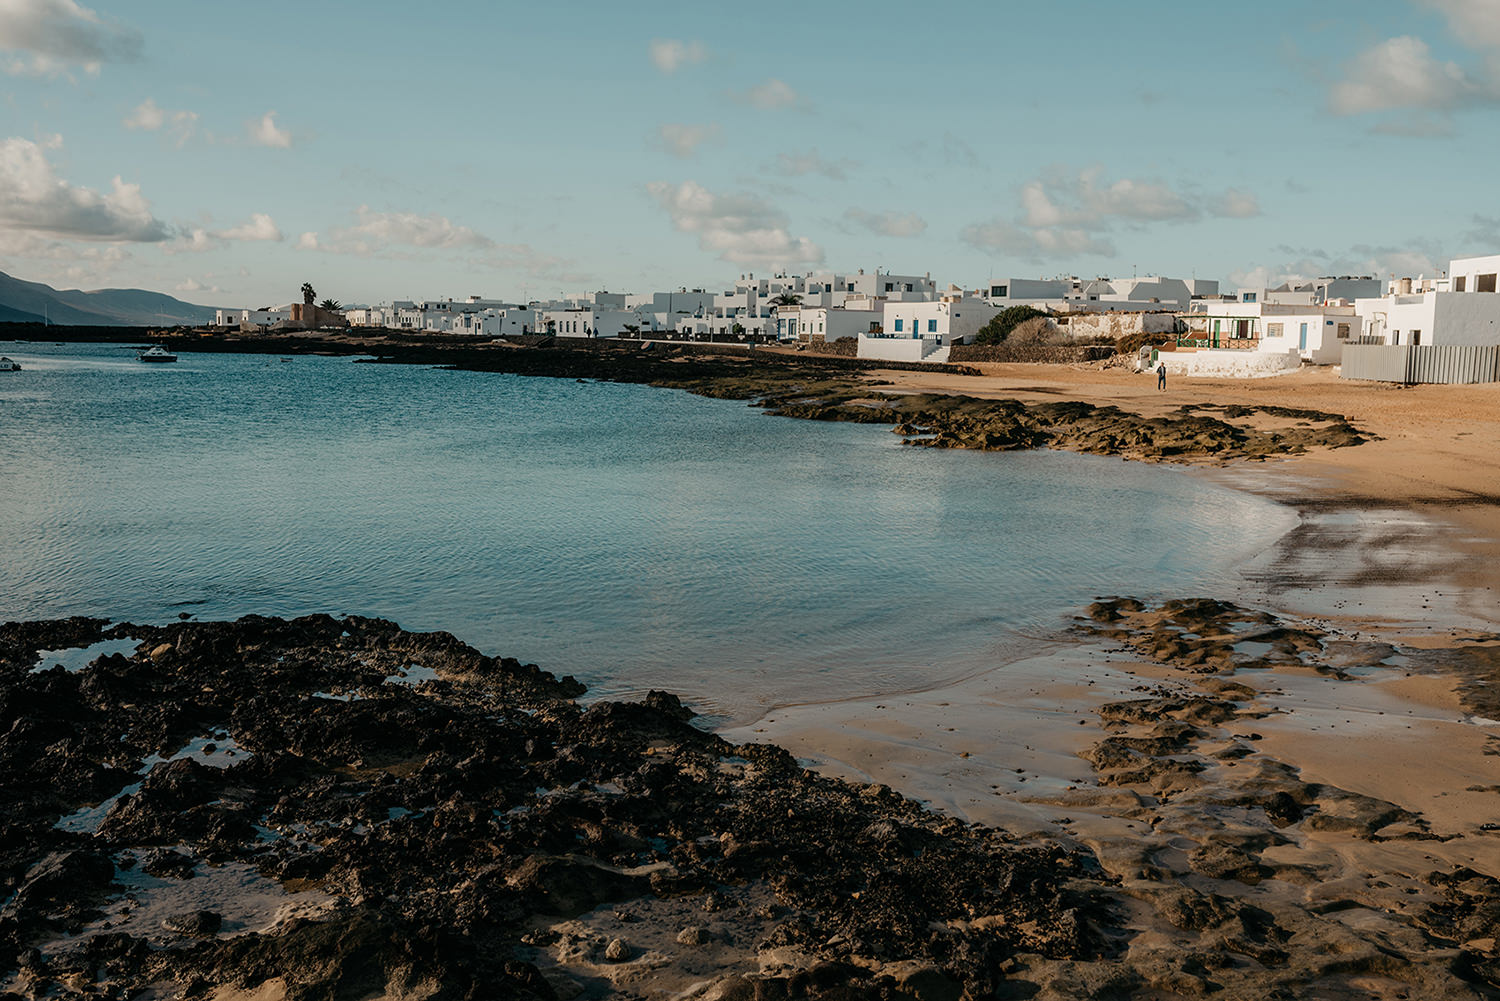 Caleta del Sebo is the main town on La Graciosa set around a pretty bay and overlooking Lanzarote